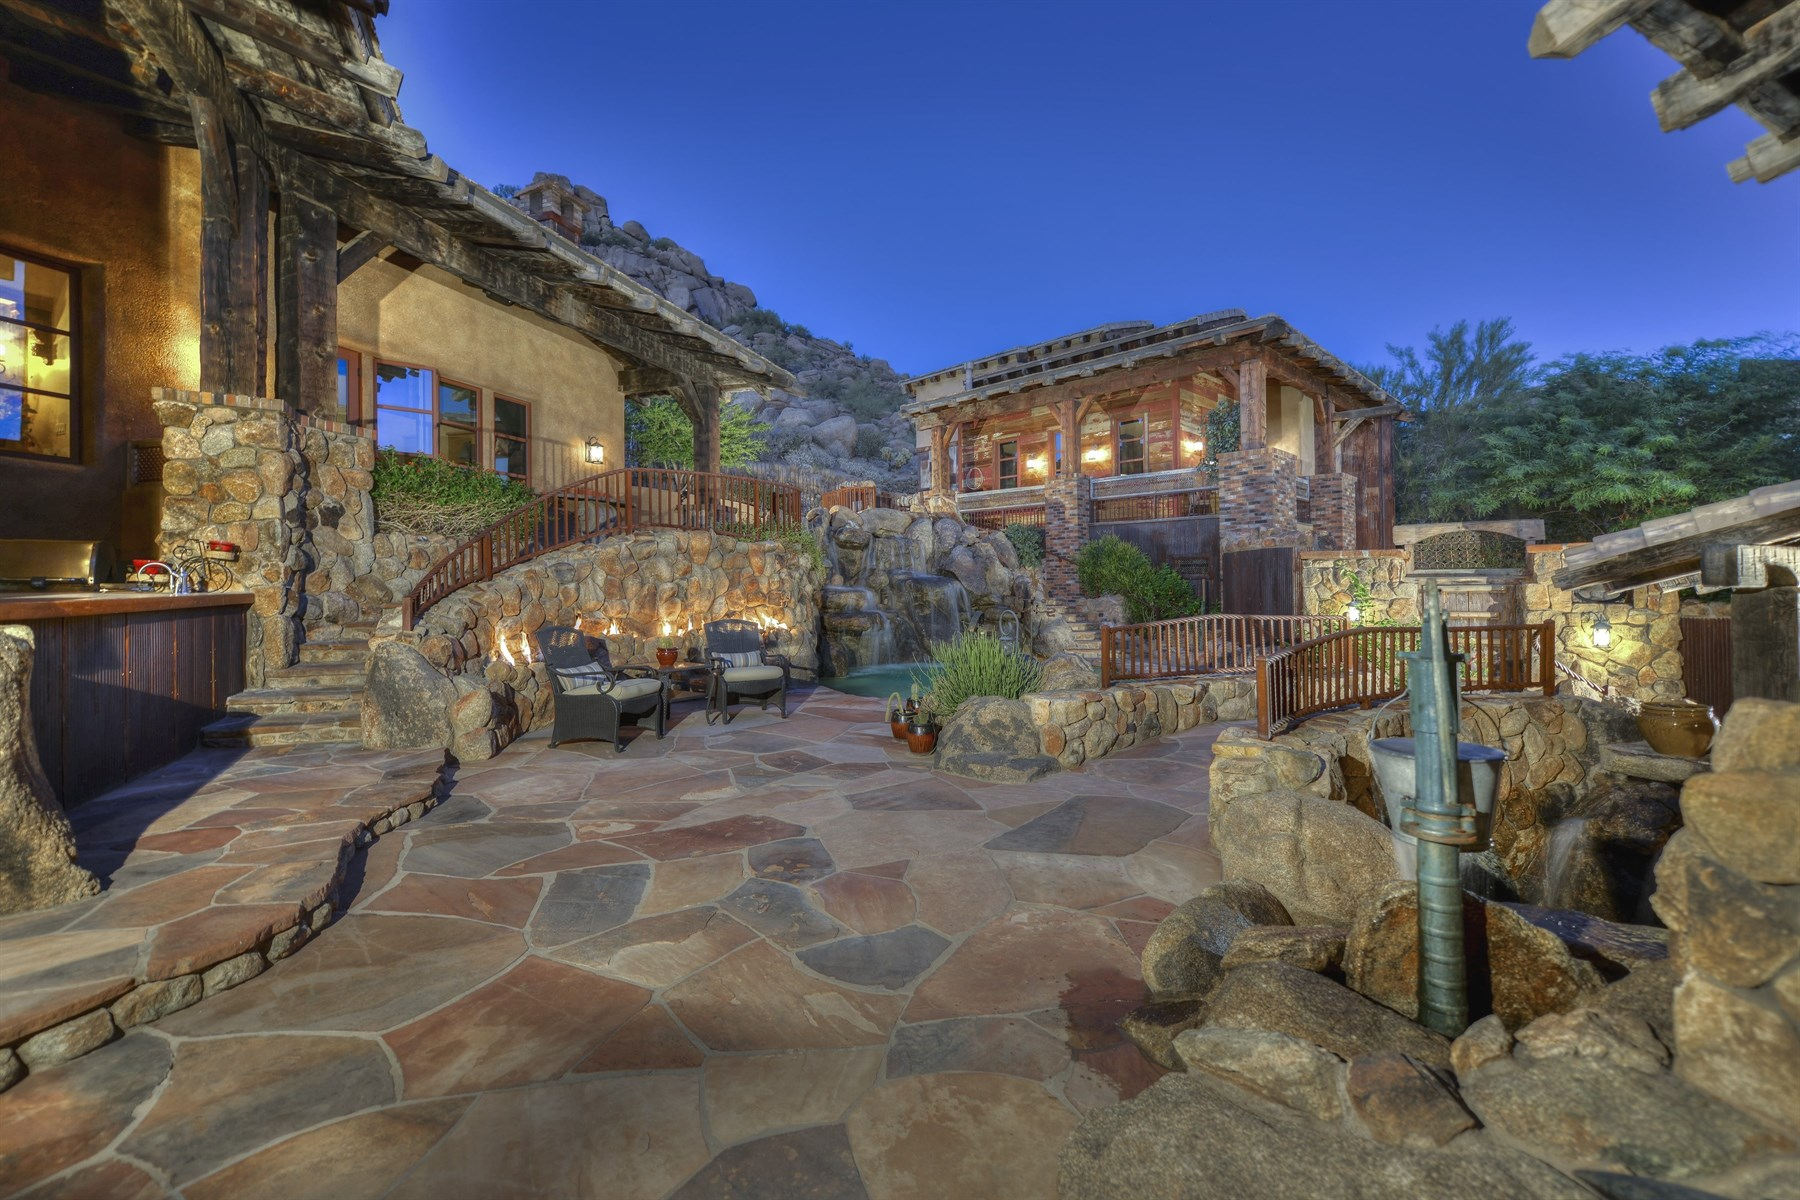 Maison unifamiliale pour l Vente à Elegant and Rustic Arizona-style on an elevated lot in Estancia 27555 N 103rd Way Scottsdale, Arizona, 85262 États-Unis